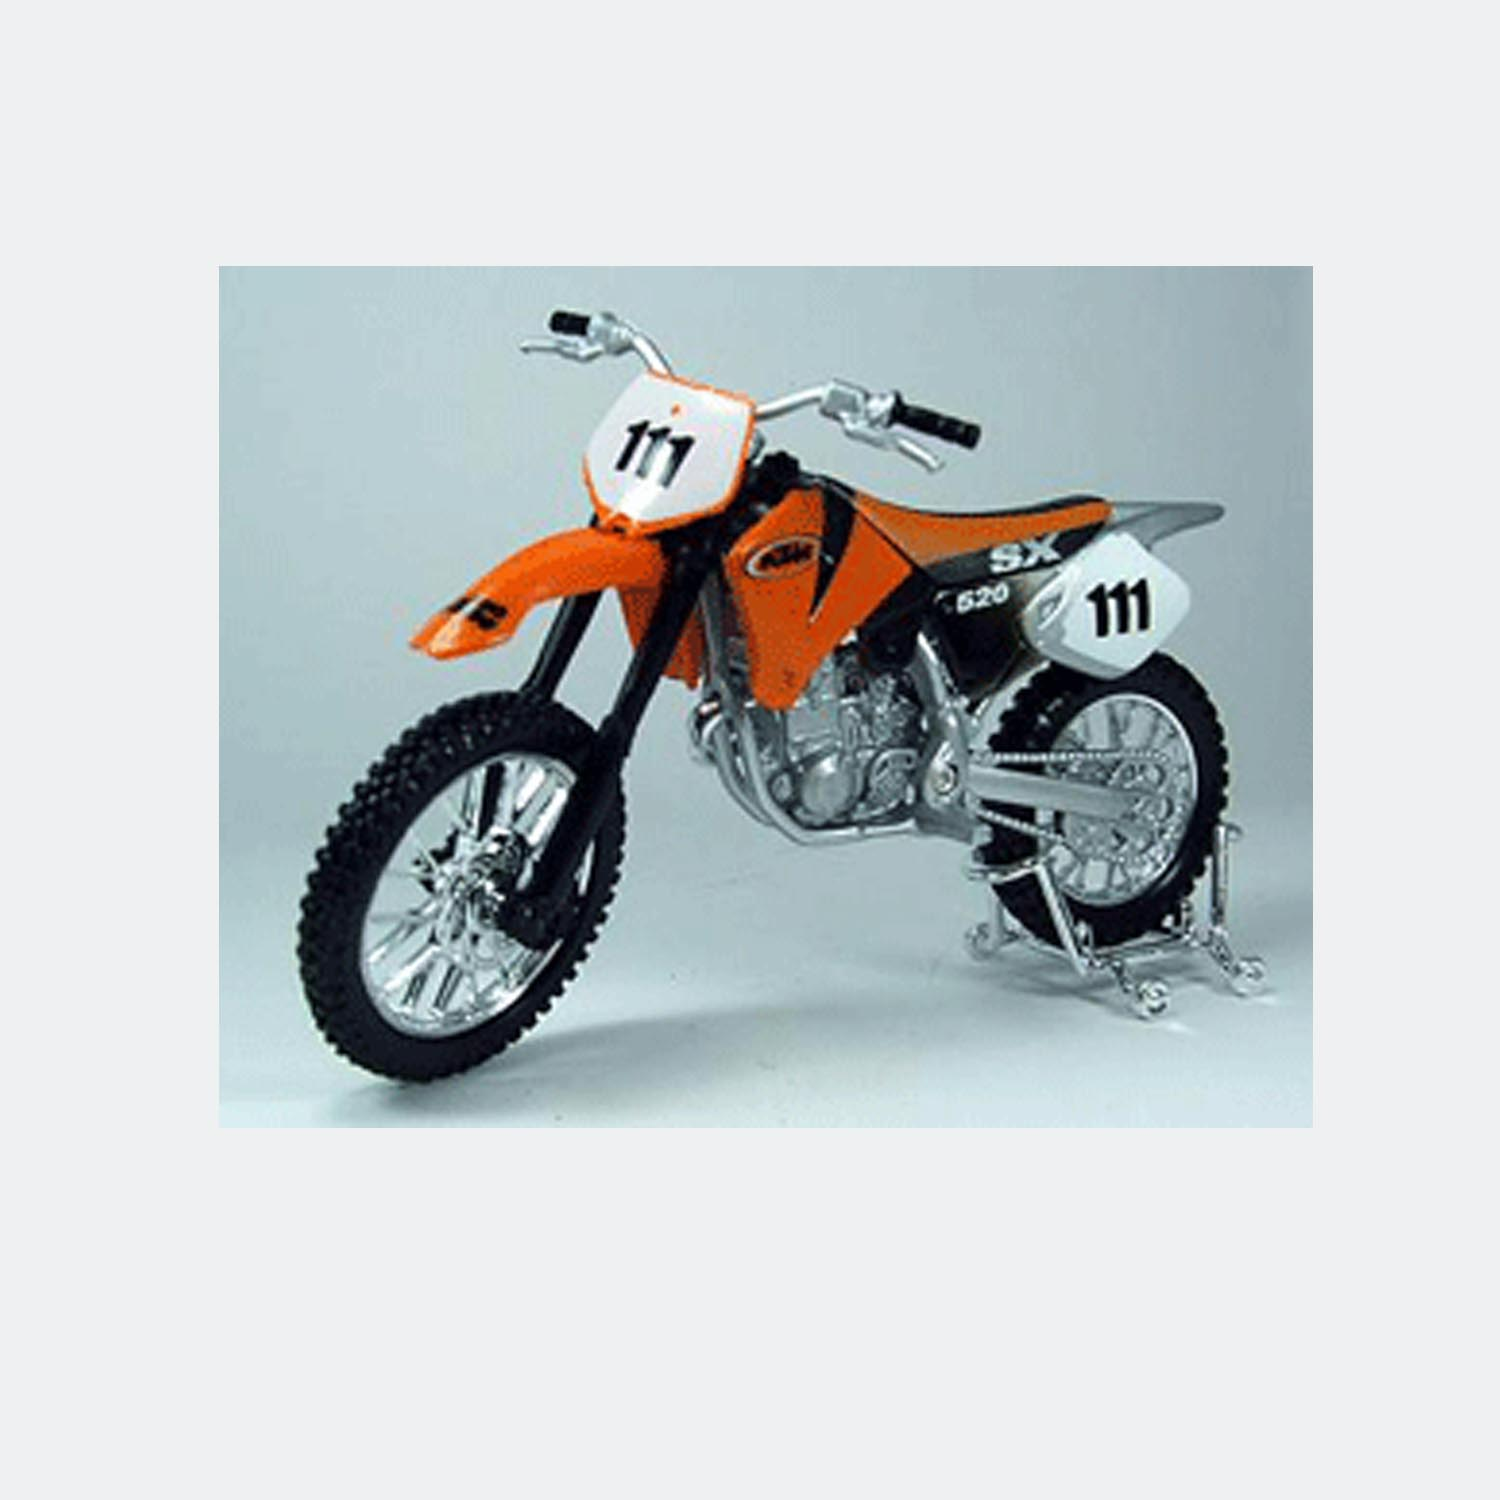 hight resolution of ktm 520 sx